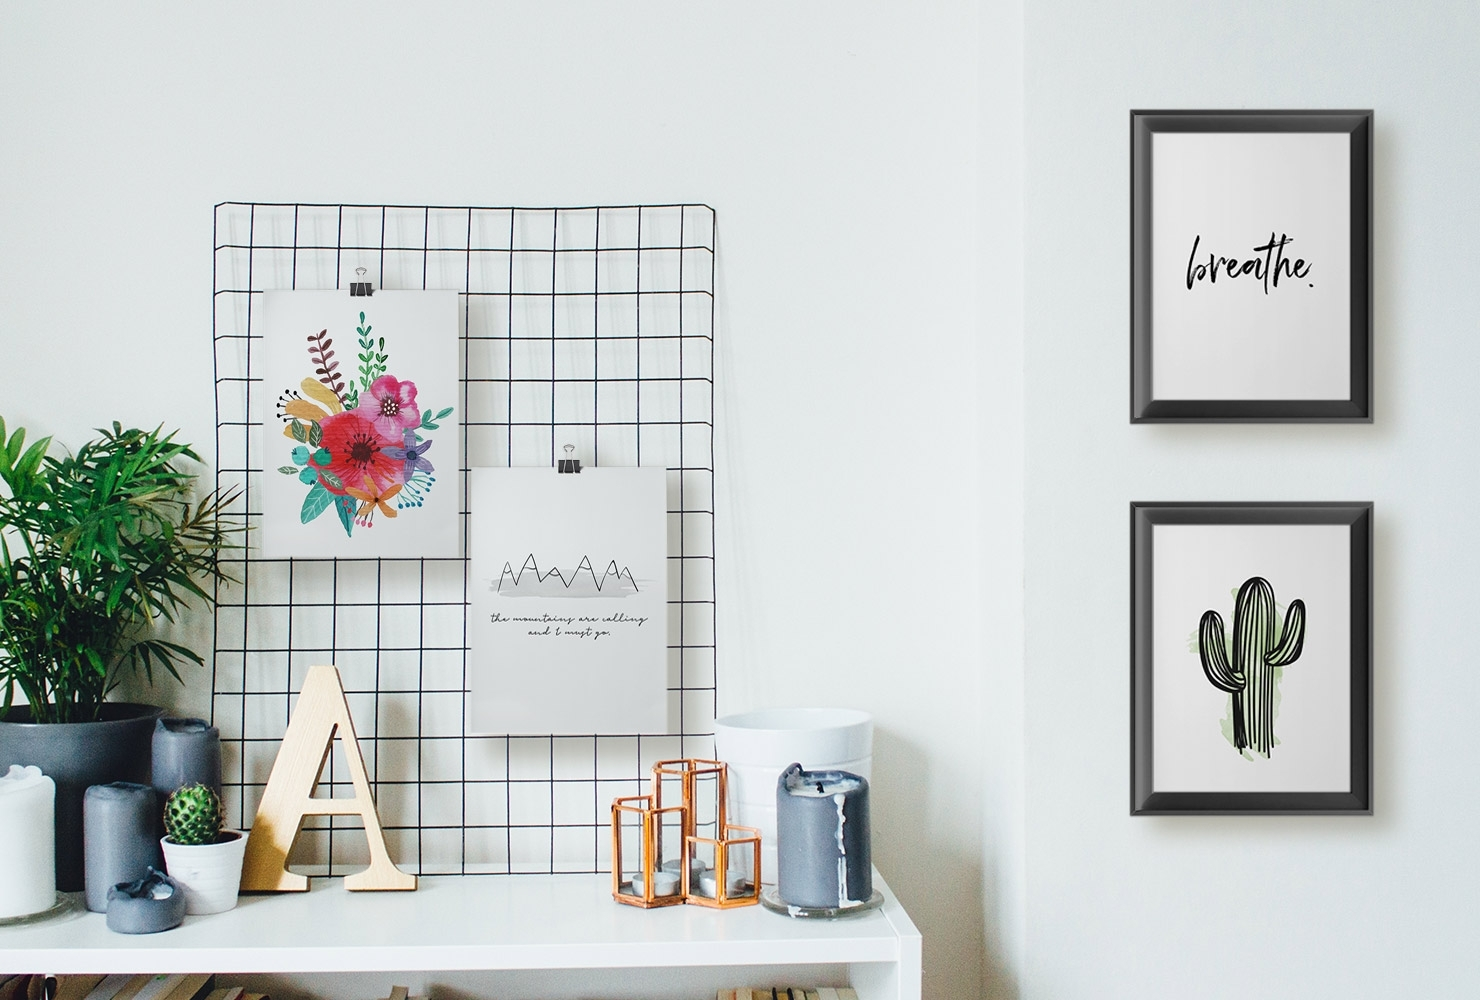 25 Unique Diy Wall Art Ideas (With Printables) | Shutterfly Intended For Diy Wall Art (Gallery 2 of 20)